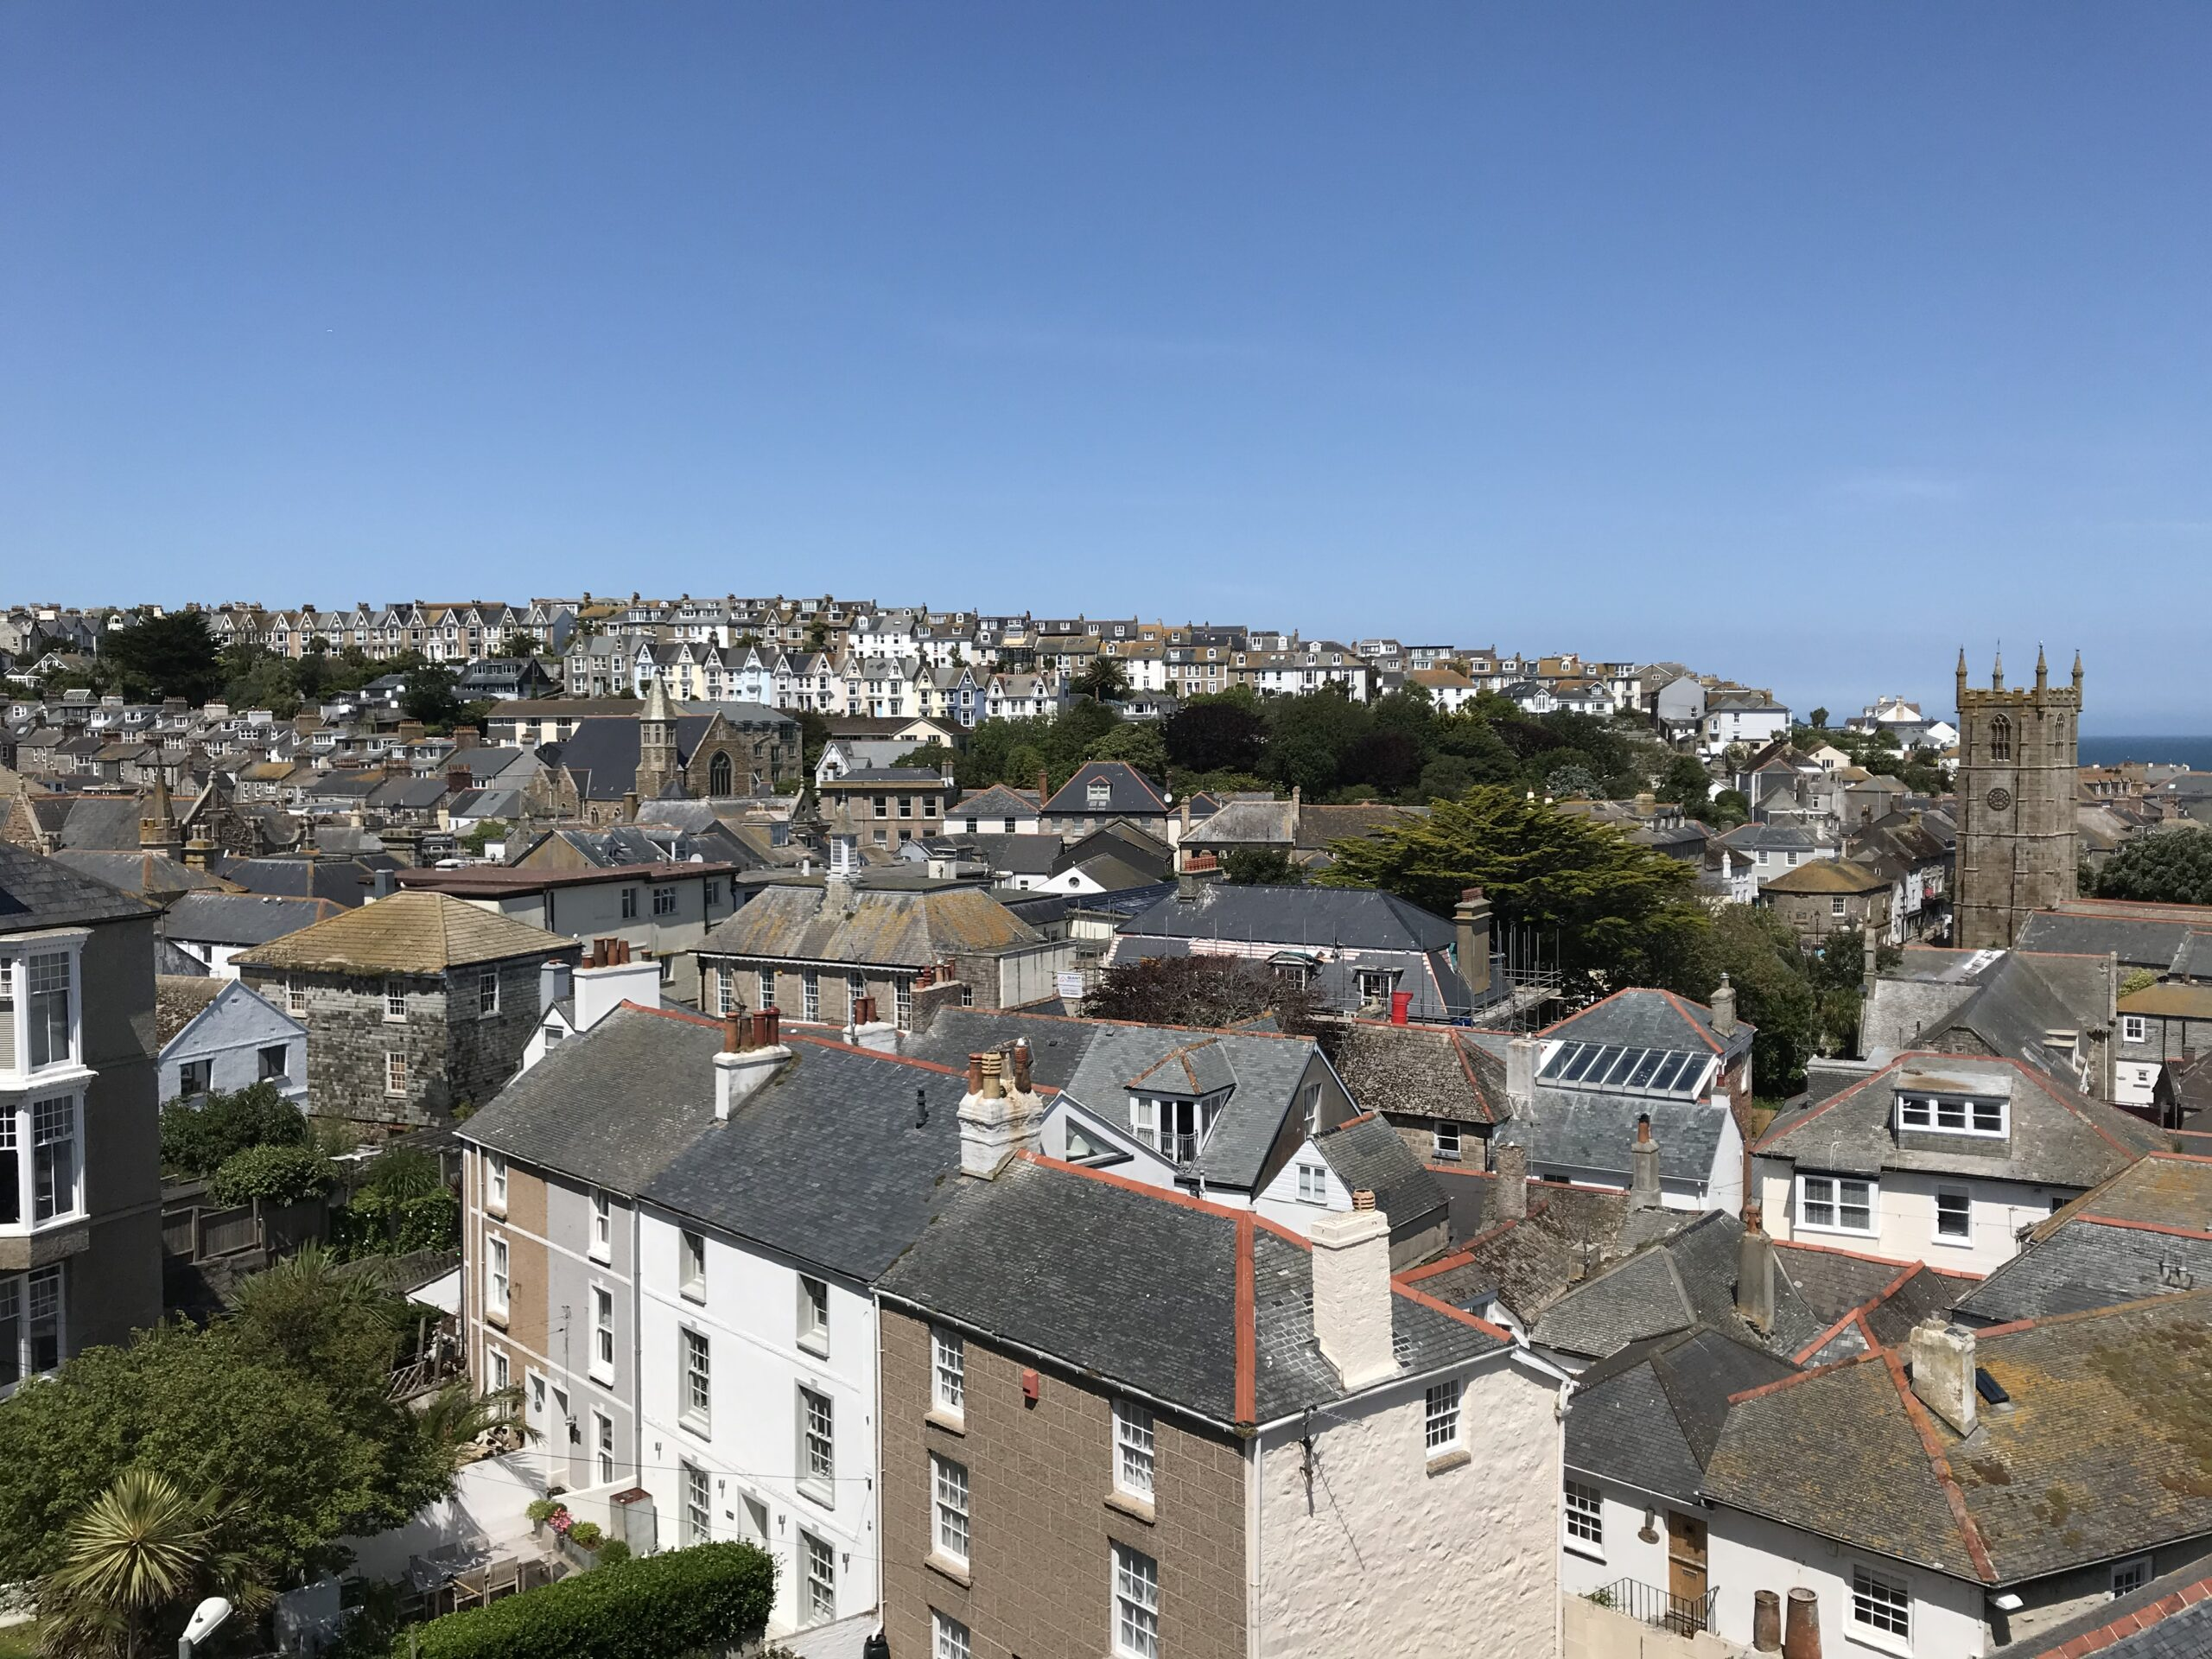 Rooftops of St Ives